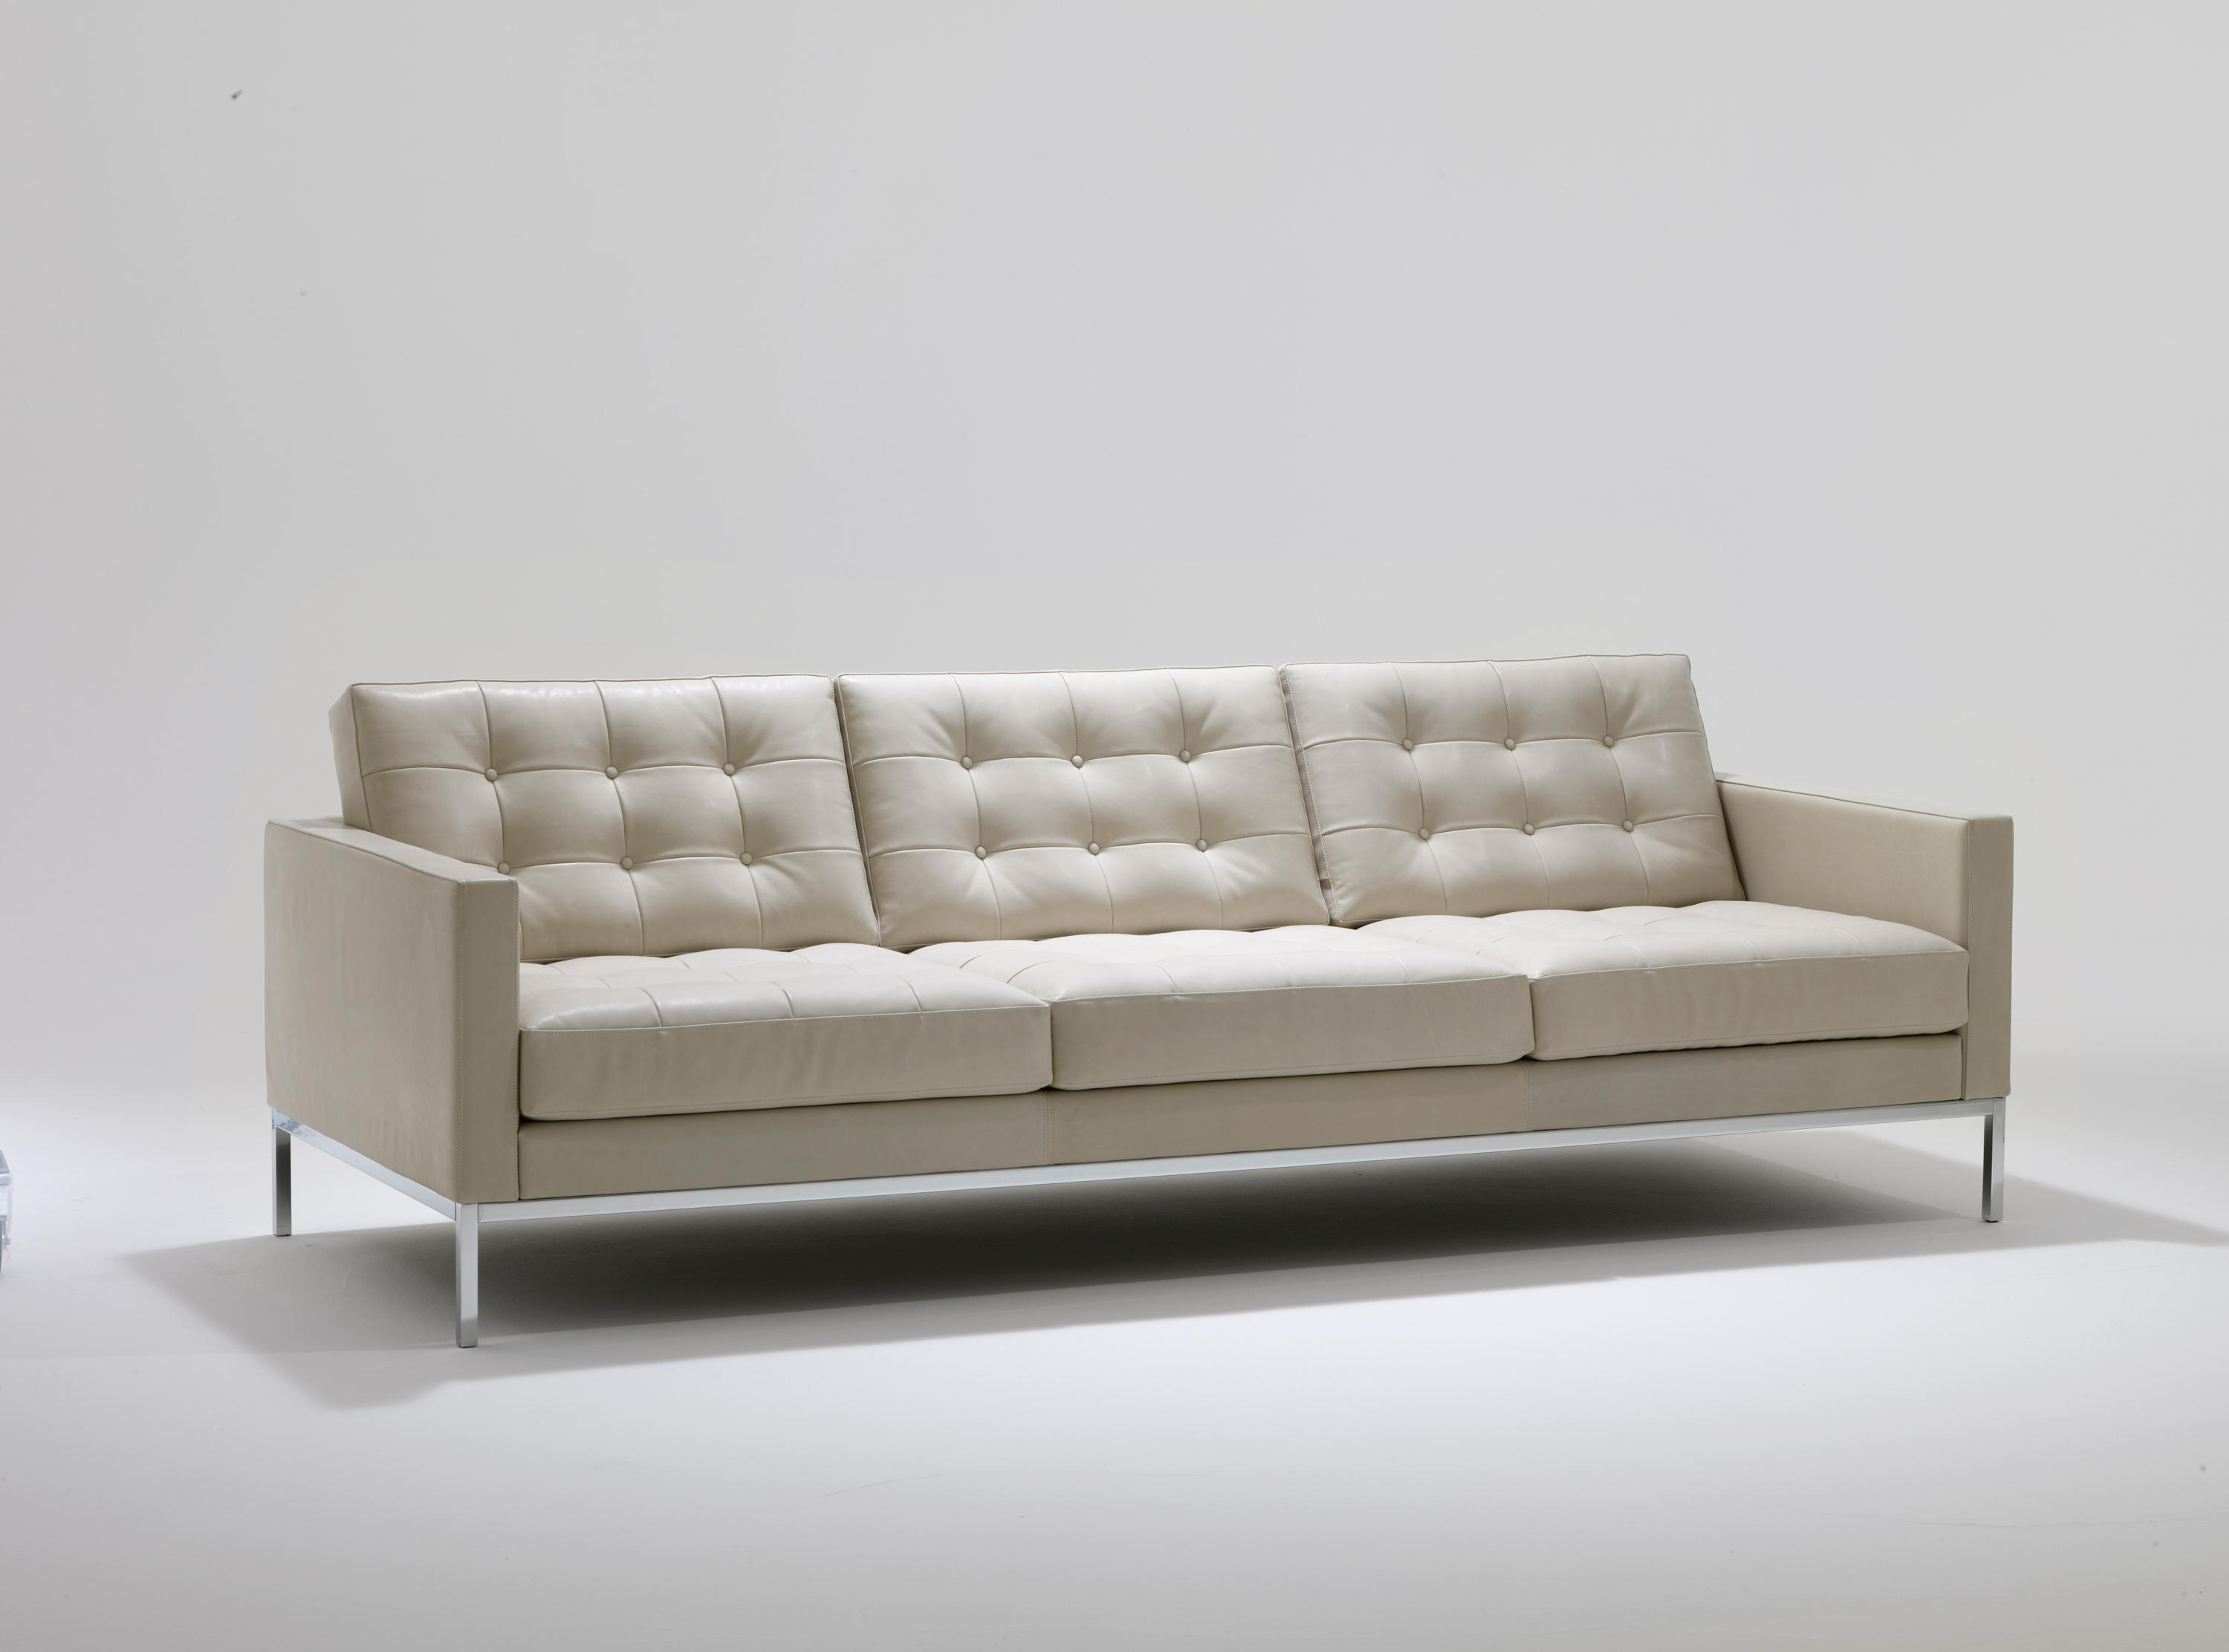 Florence Knoll Lounge 3 Seat Sofa Lounge Sofas From Knoll International Architonic